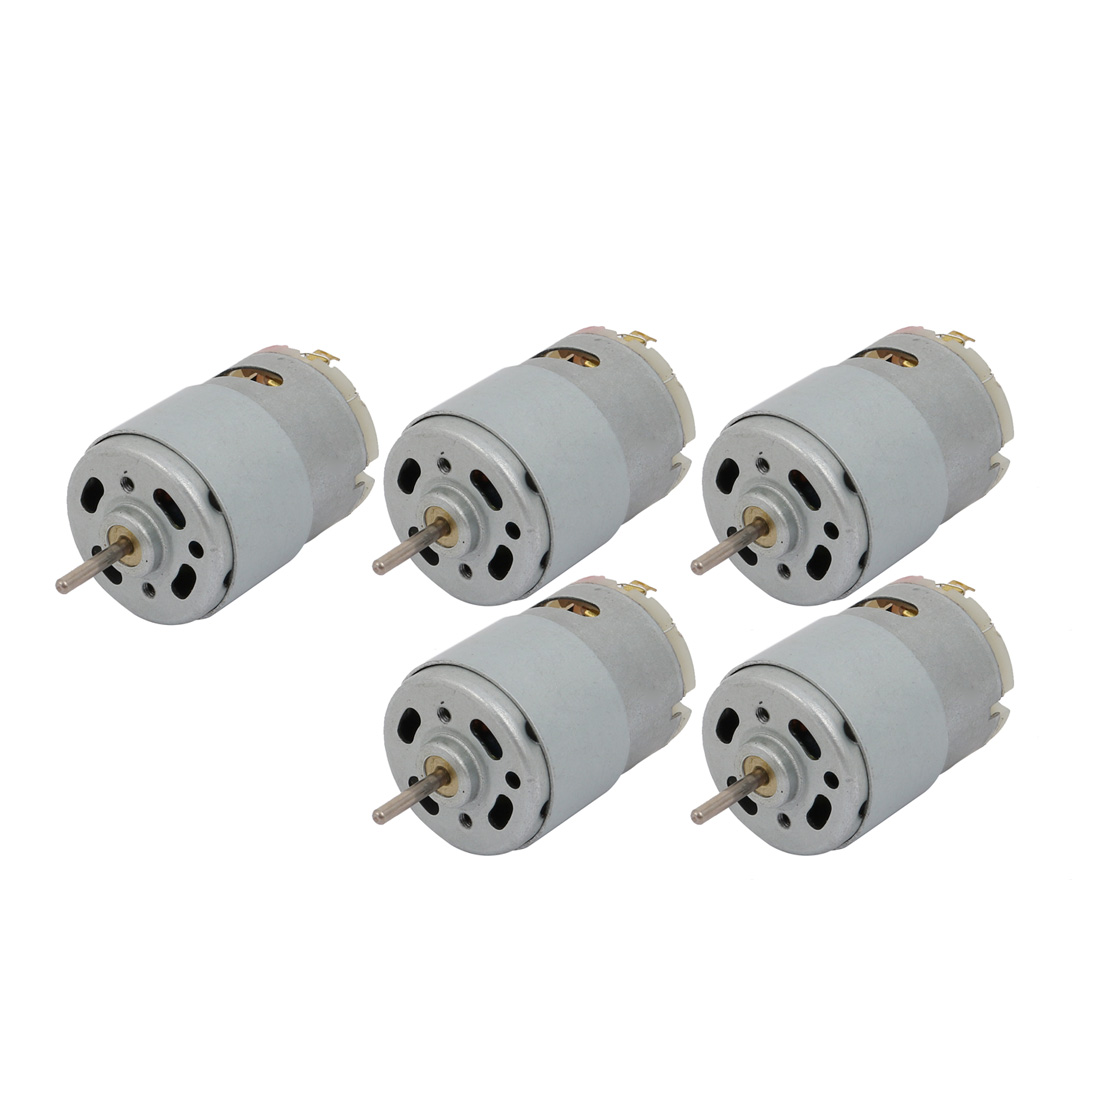 5Pcs DC12V 6500RPM 2.3mm Dia Shaft Brushed DC Electric Motor for RC Model Toy